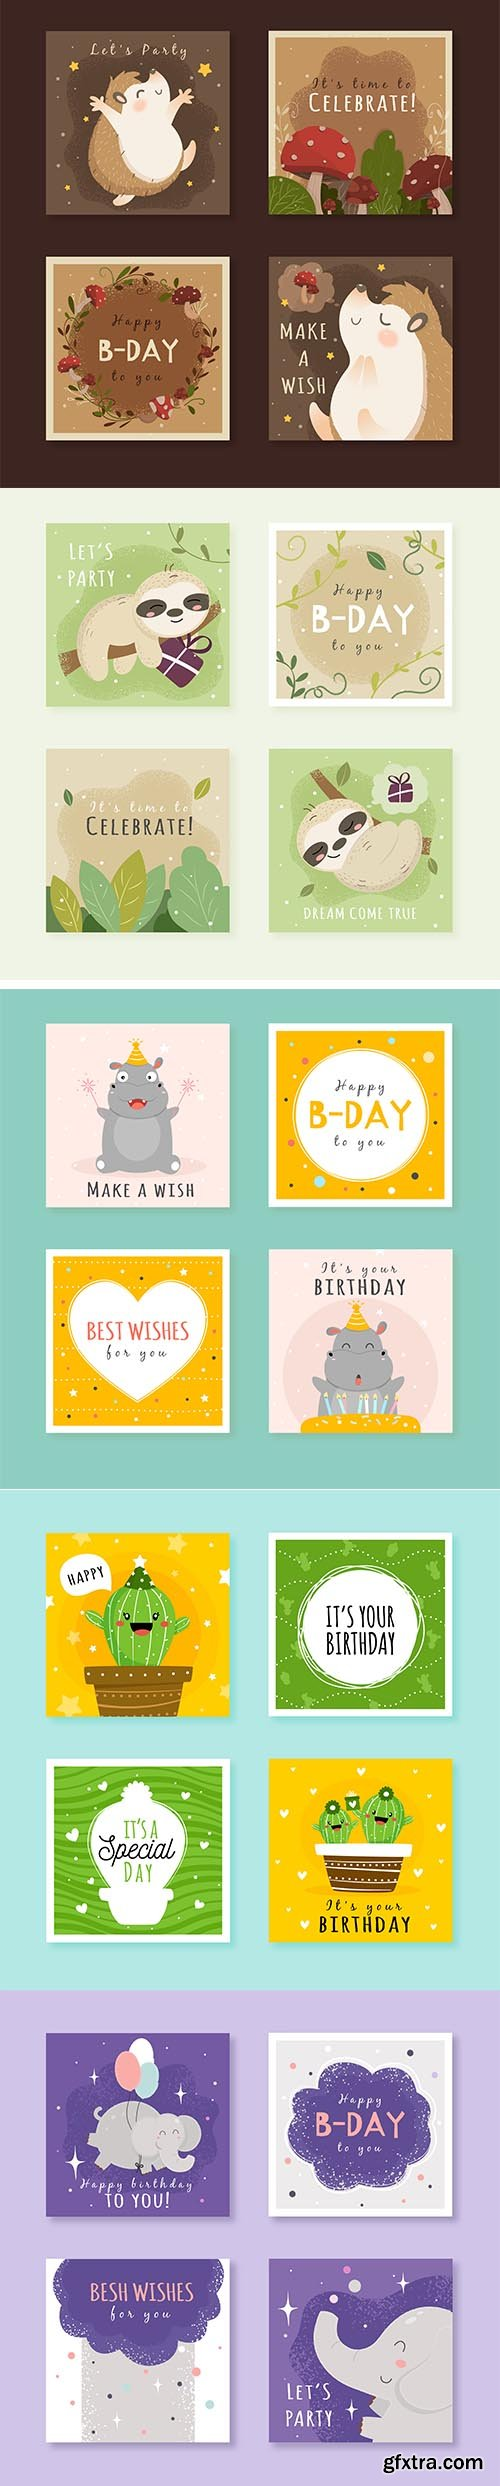 Birthday Cards with Colorful Party Elements